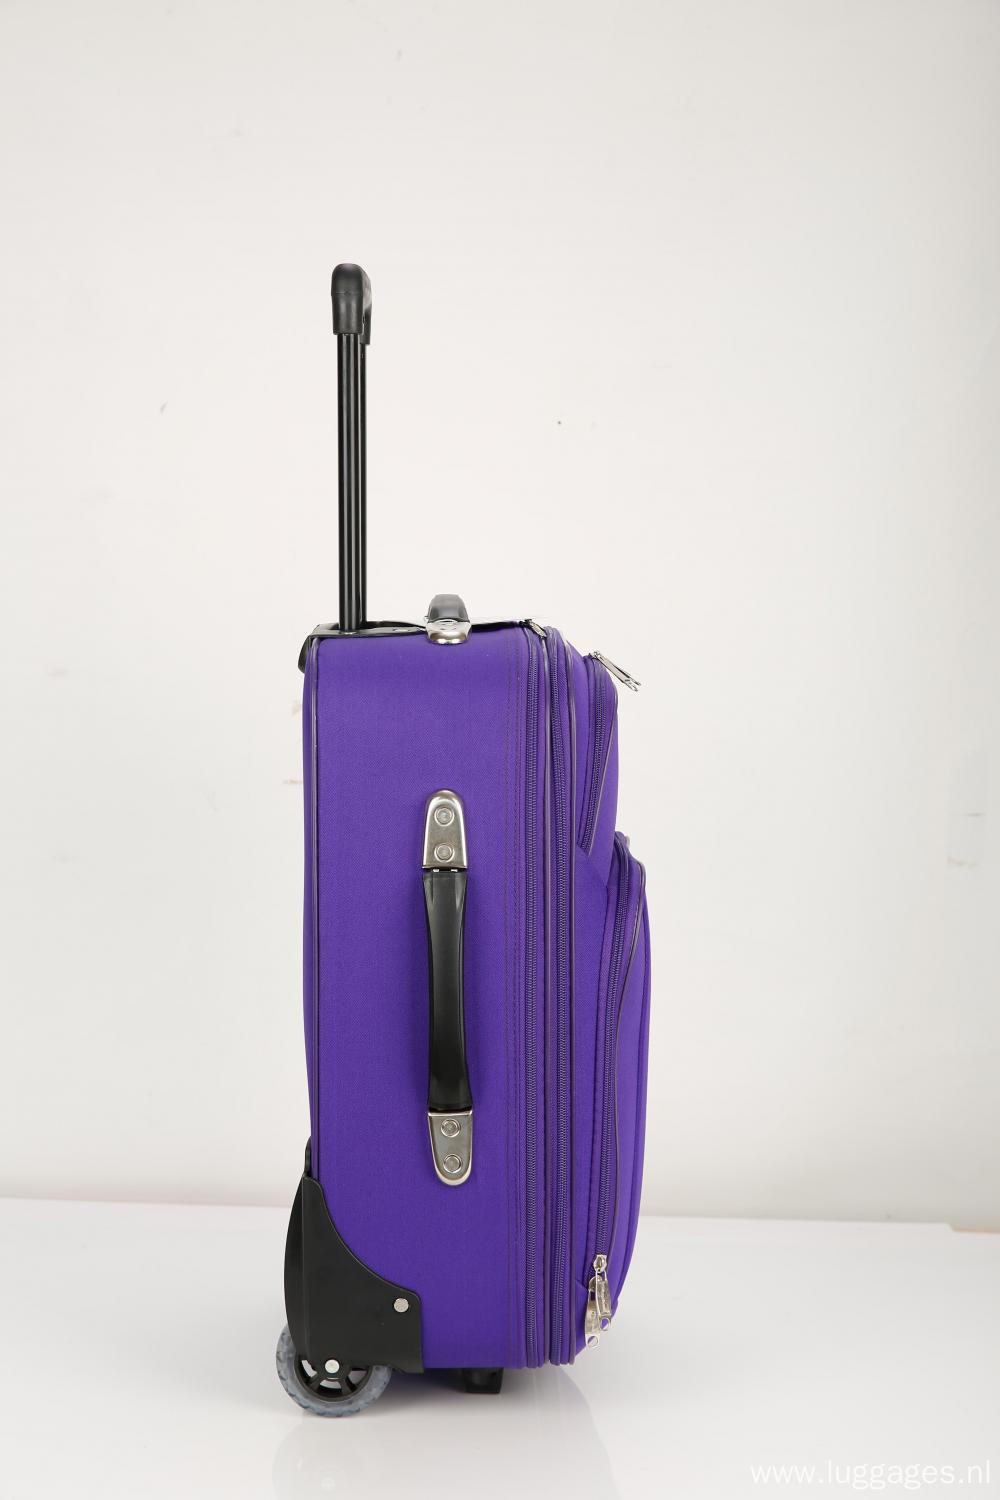 Soft Luggage with EVA Pocket